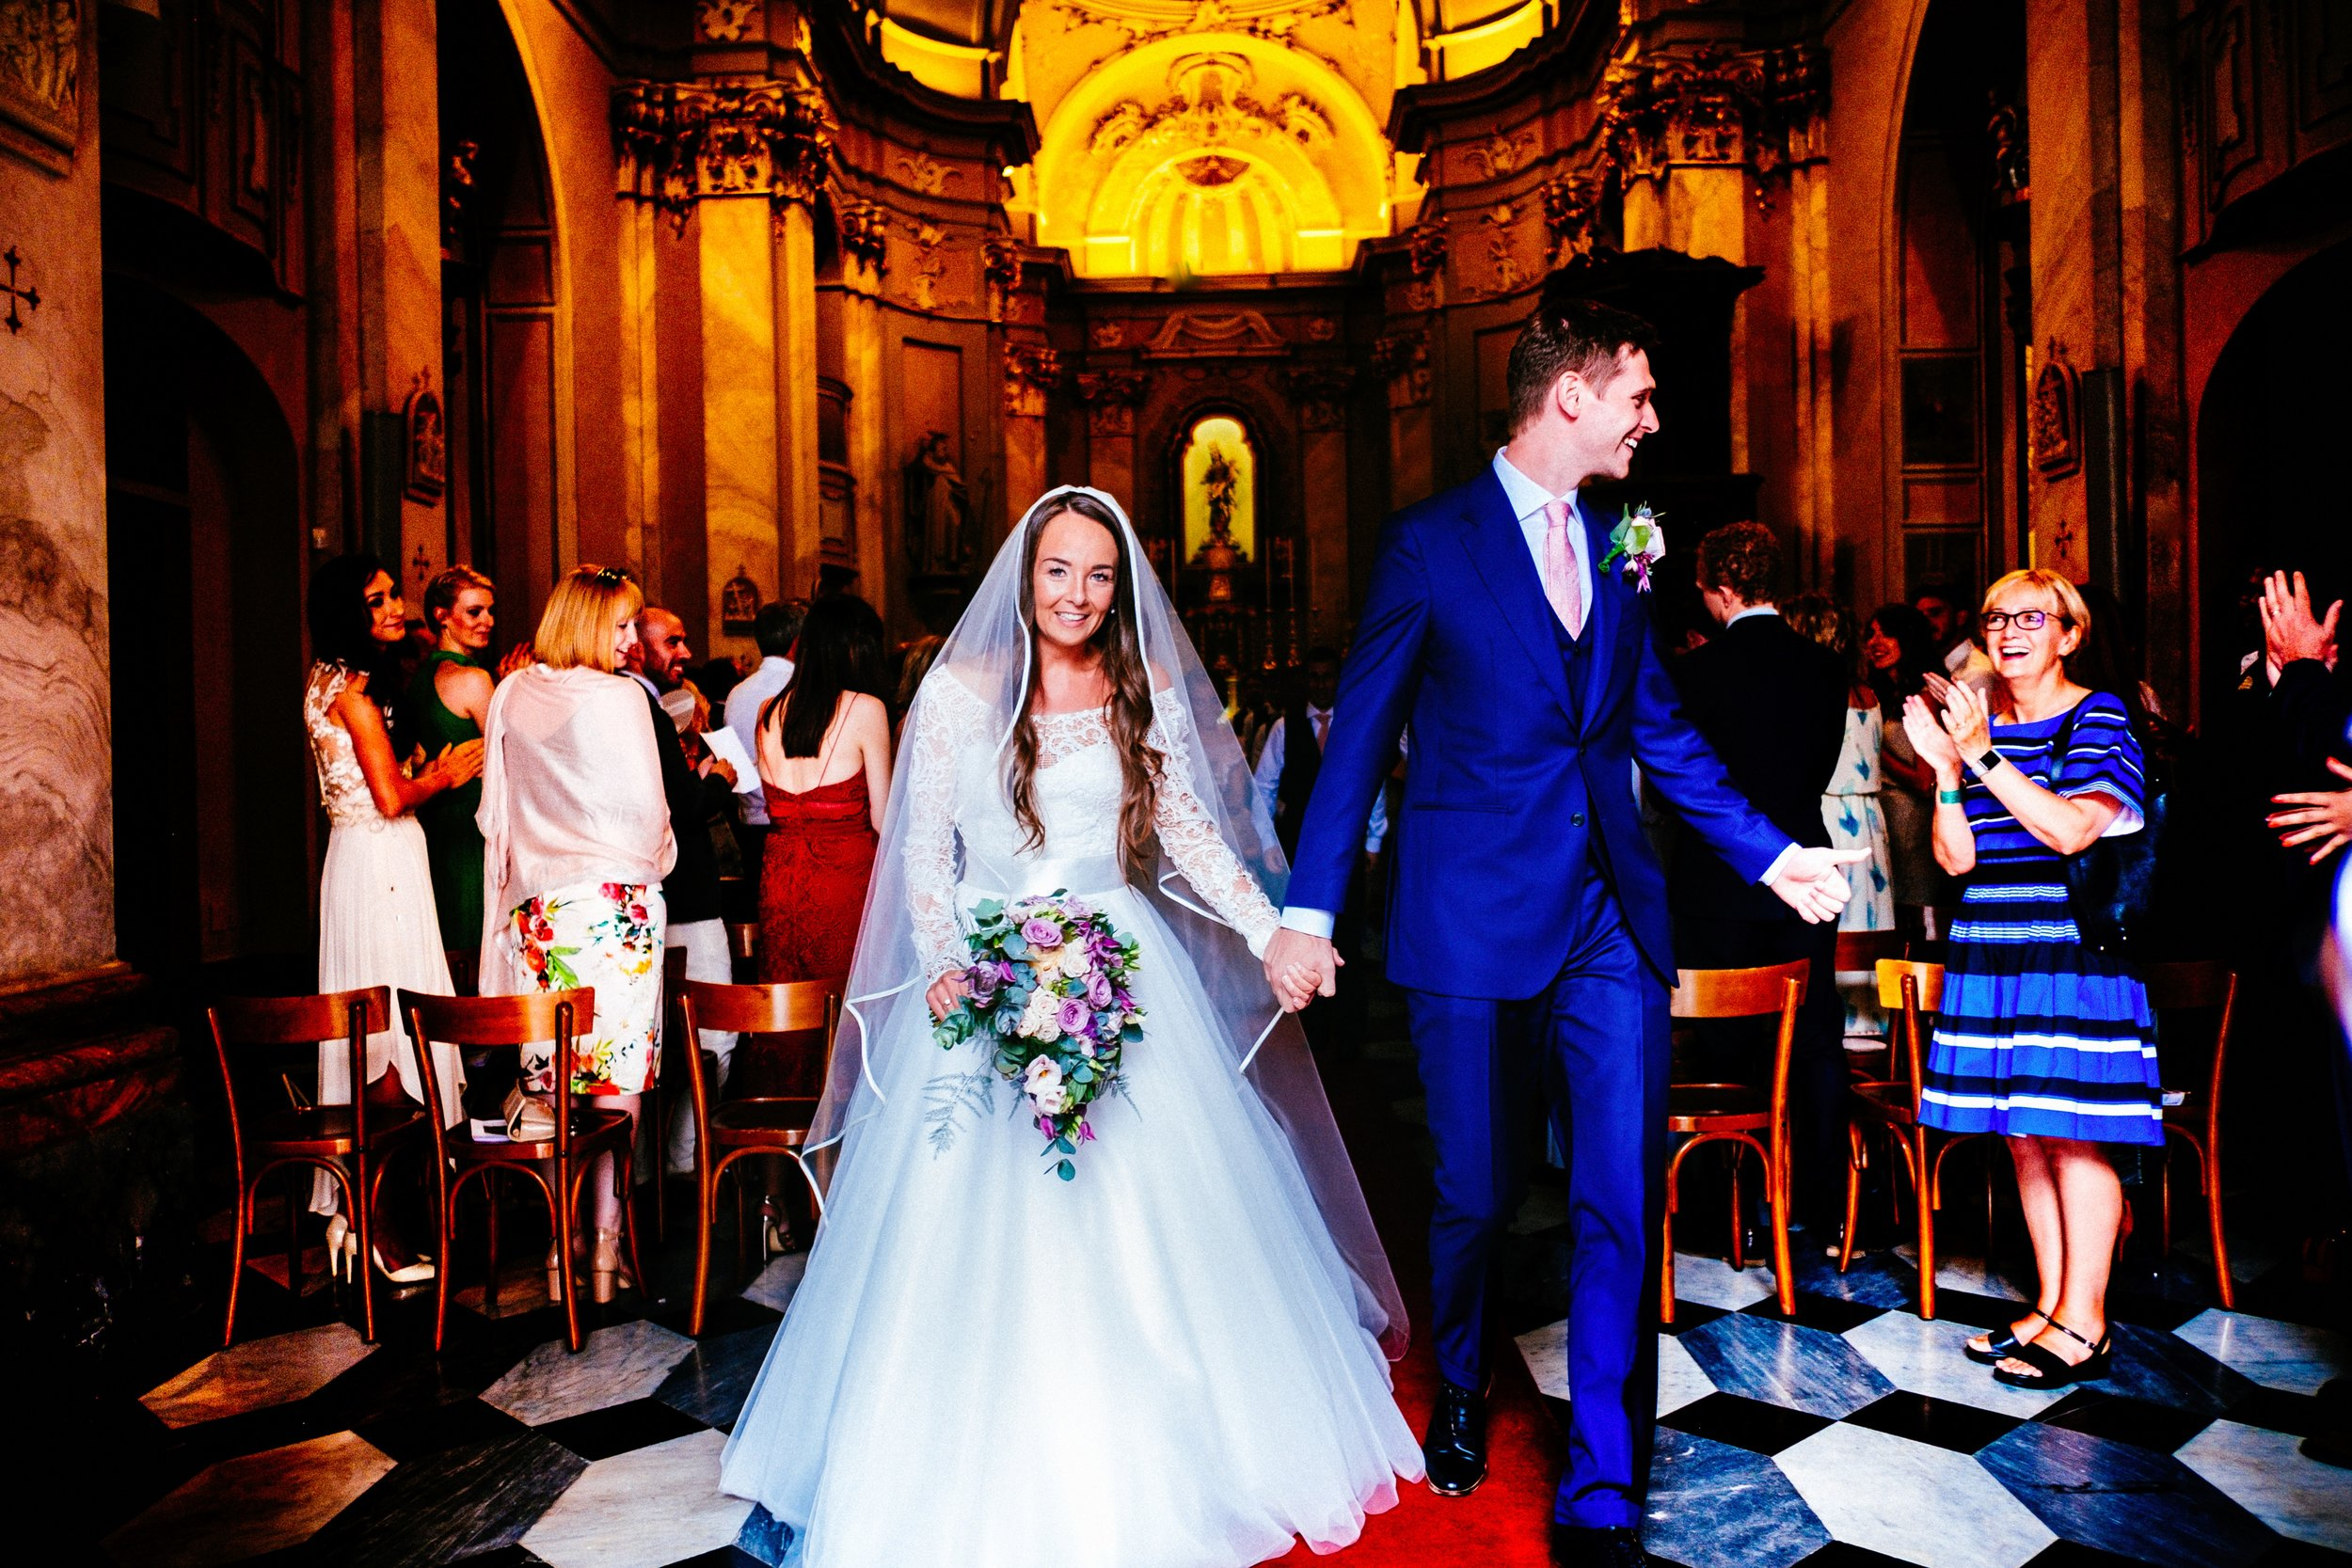 bride and groom just married in lake como italy by relaxed wedding photographer bomknights